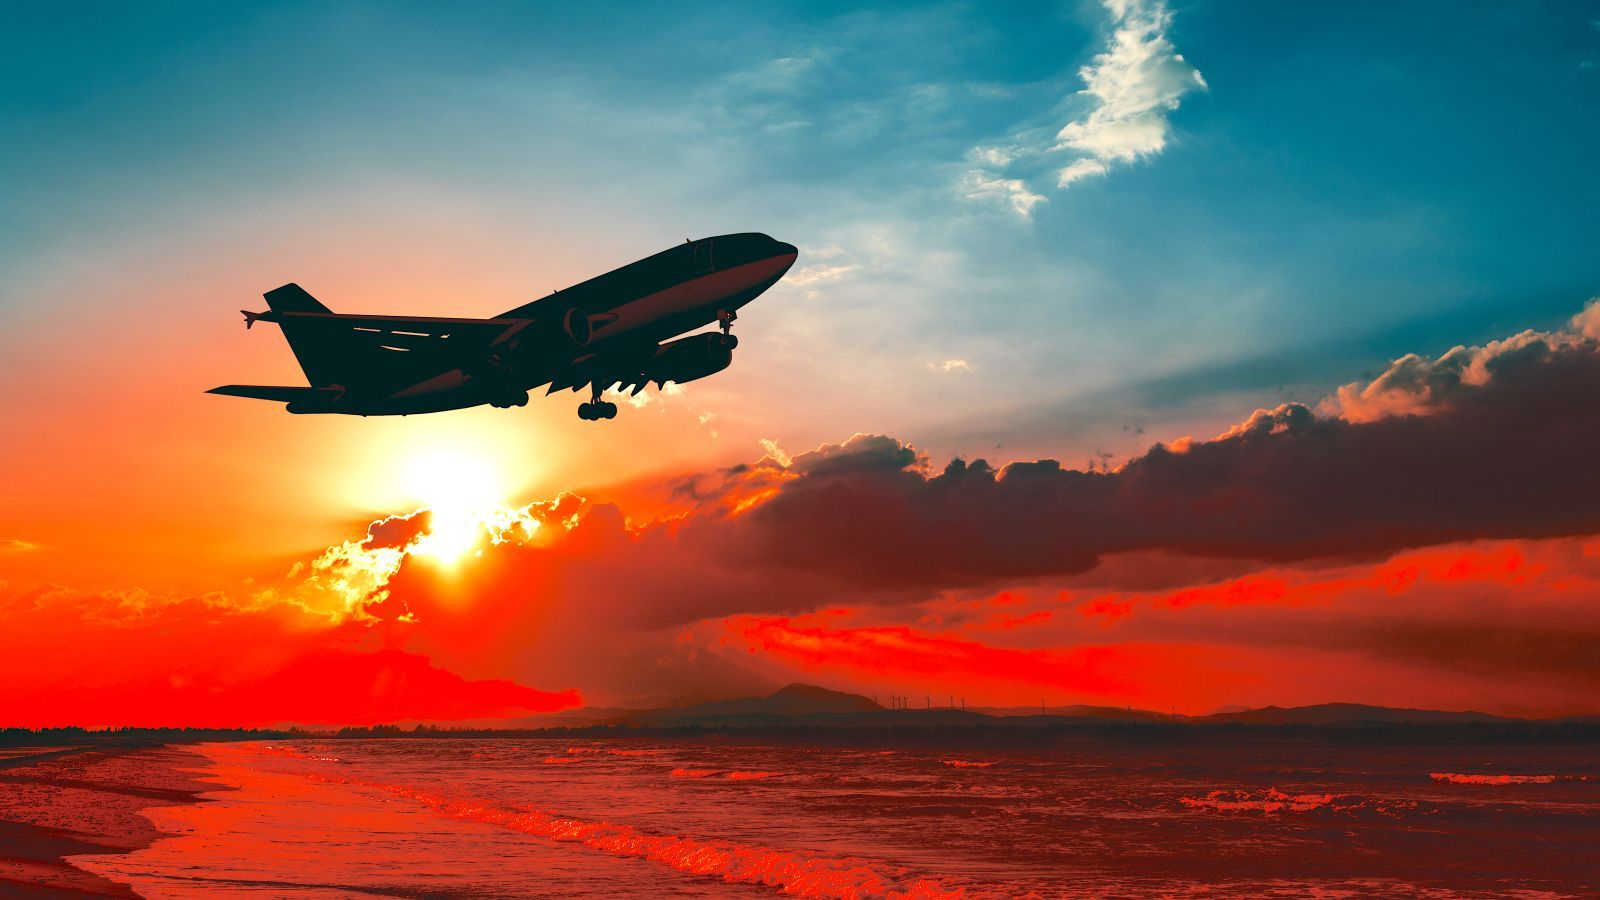 Don T Bank Airline Miles And Reward Points For Too Long Airplane Wallpaper Plane Wallpaper Aircraft